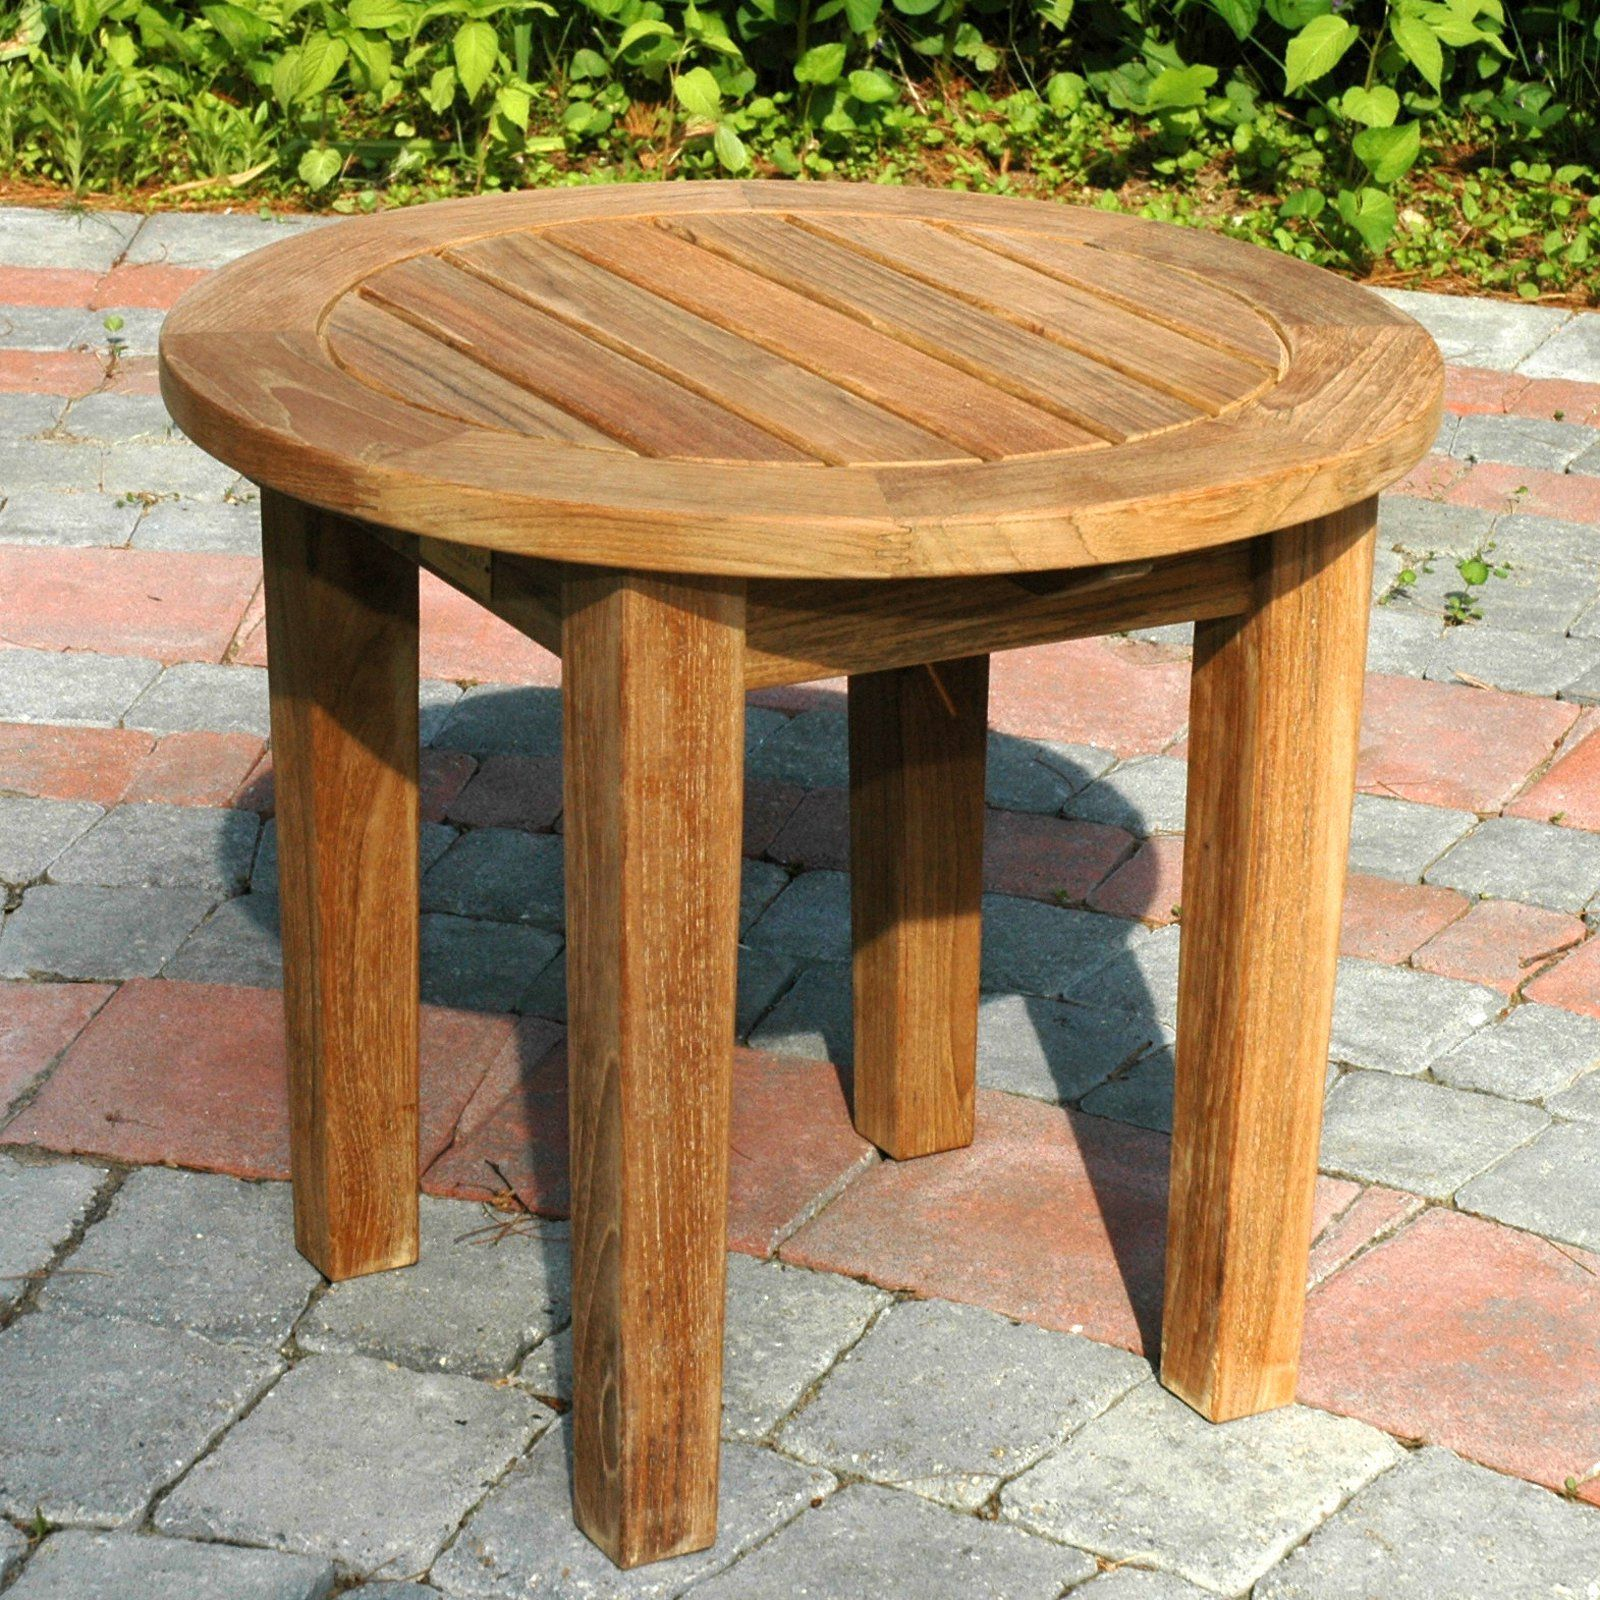 Regal Teak Round Side Table Fixed Leg - The Regal Teak Round Side Table Fixed Leg makes a lovely addition to your outdoor furniture set. Made from grade-A solid teak, this piece won't just...